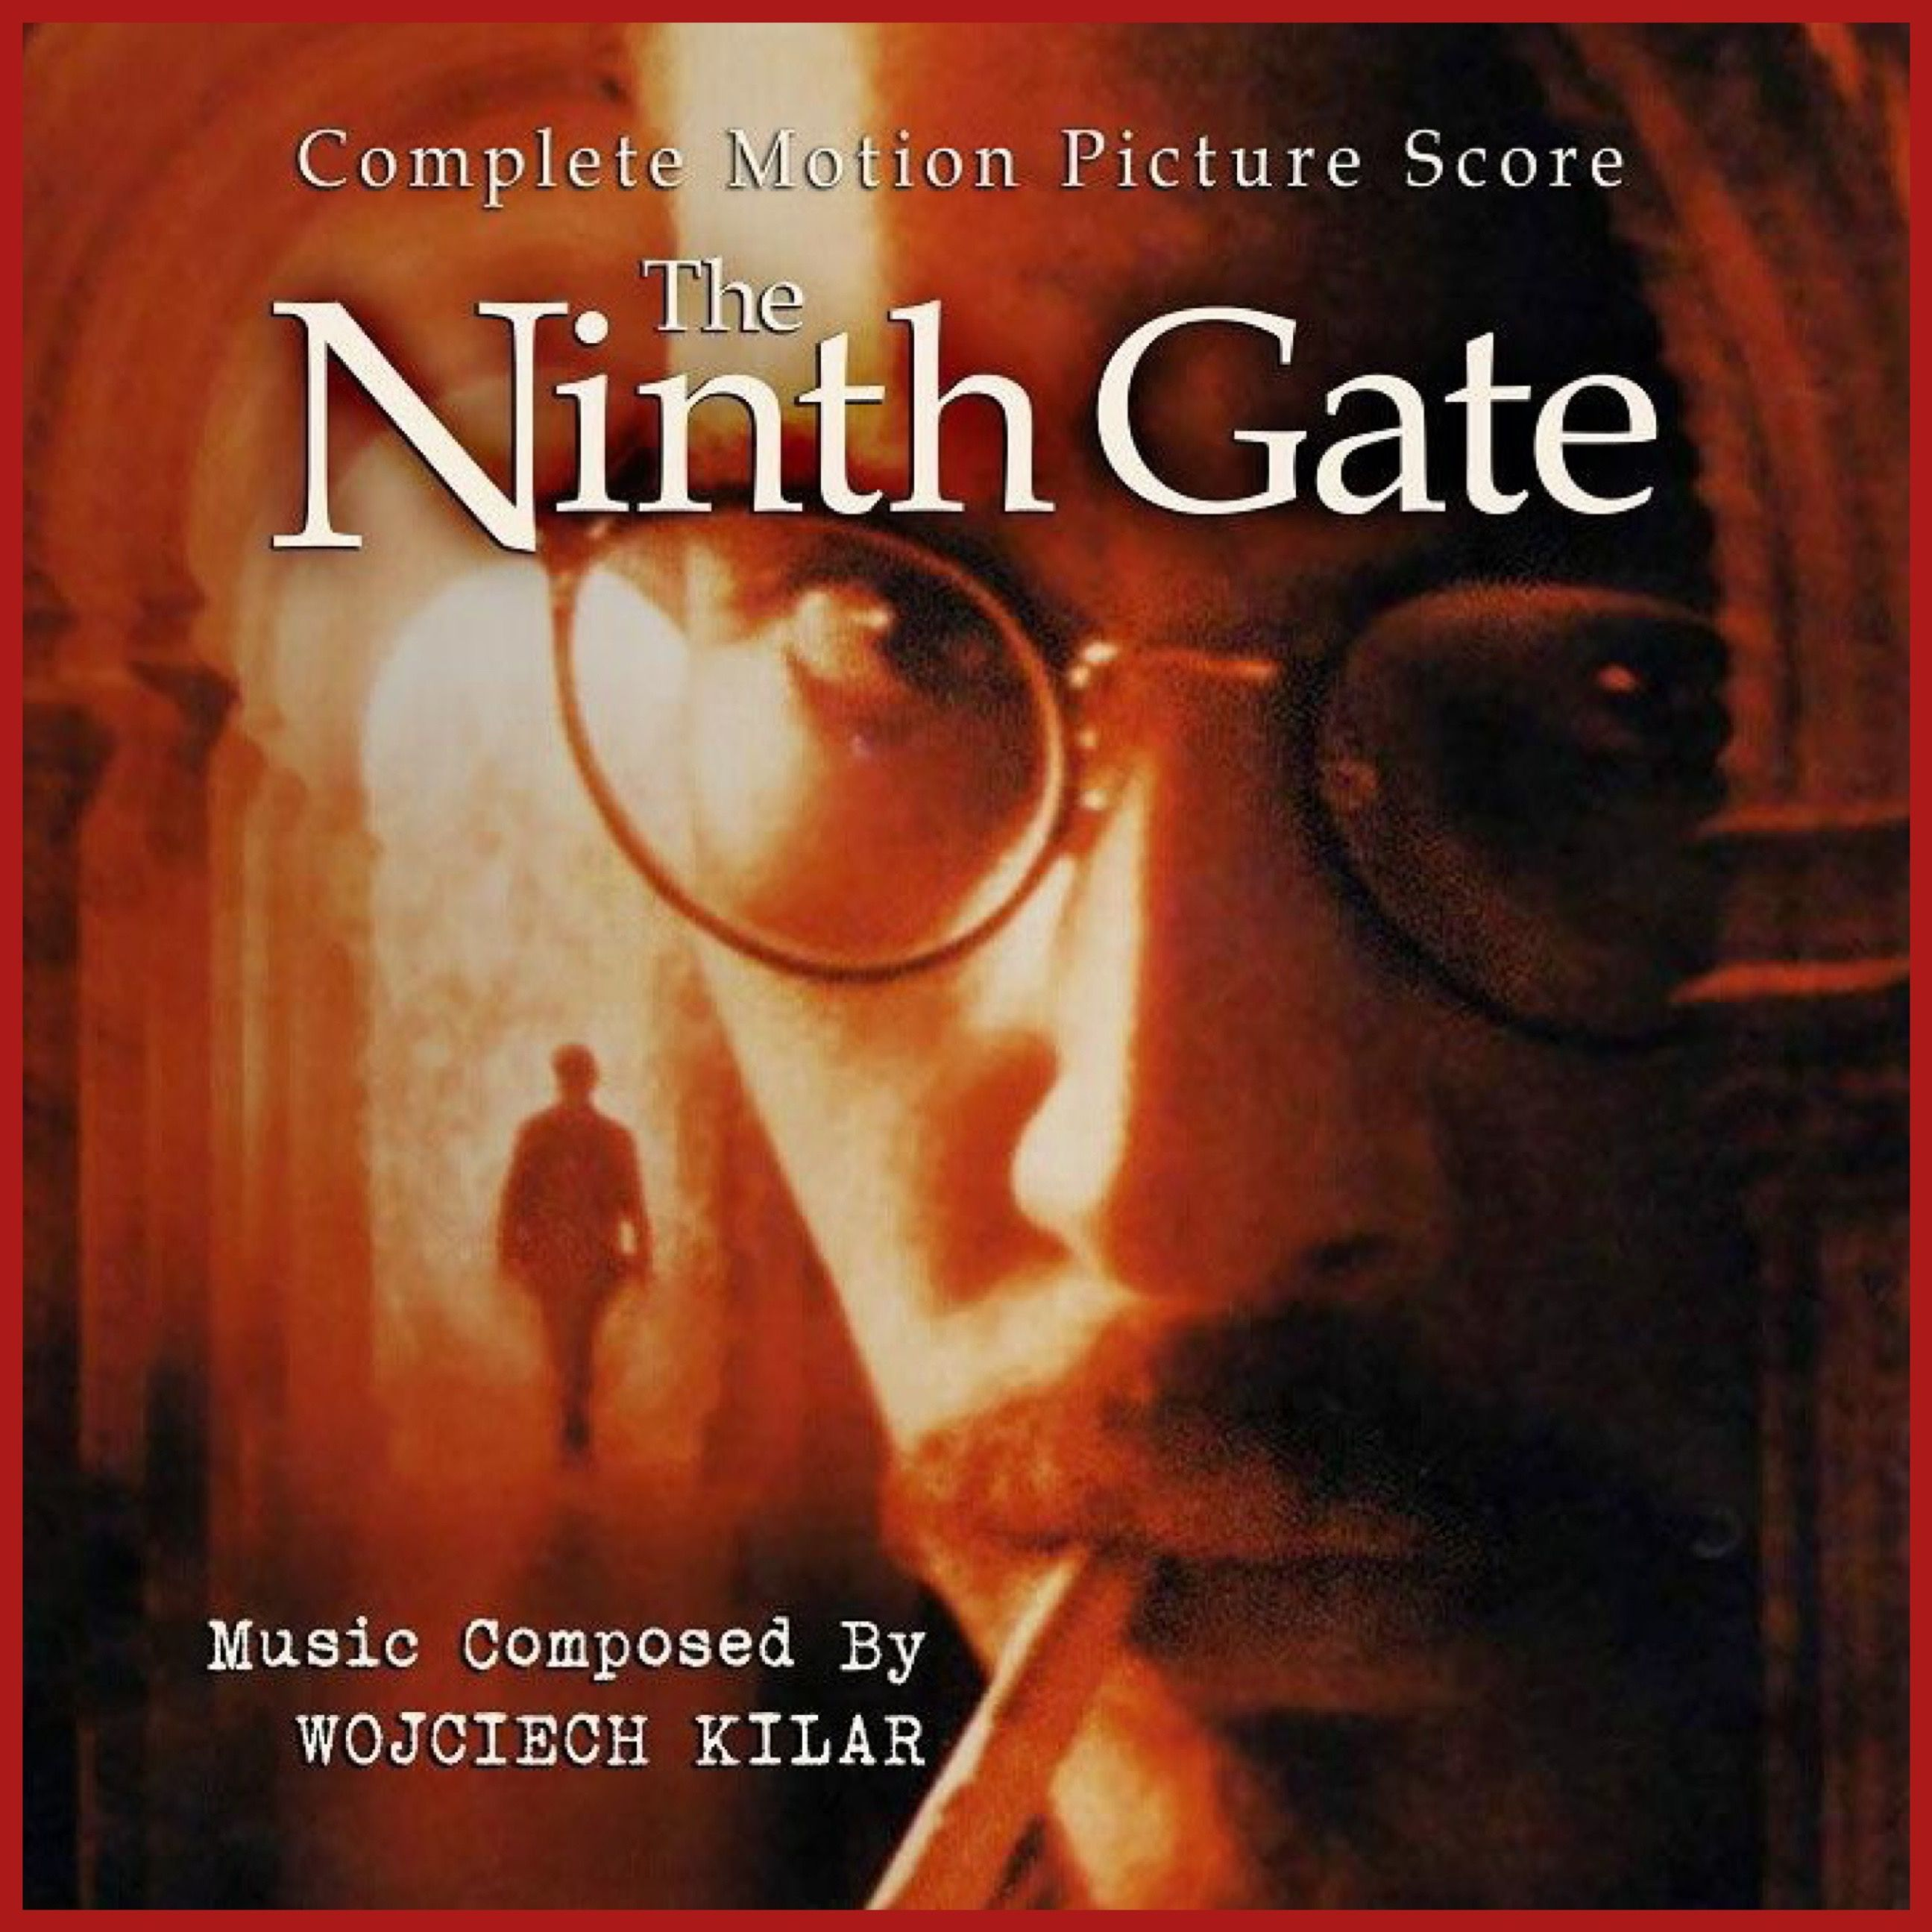 Pin by Melissa Eayre on Movies The ninth gate, Film